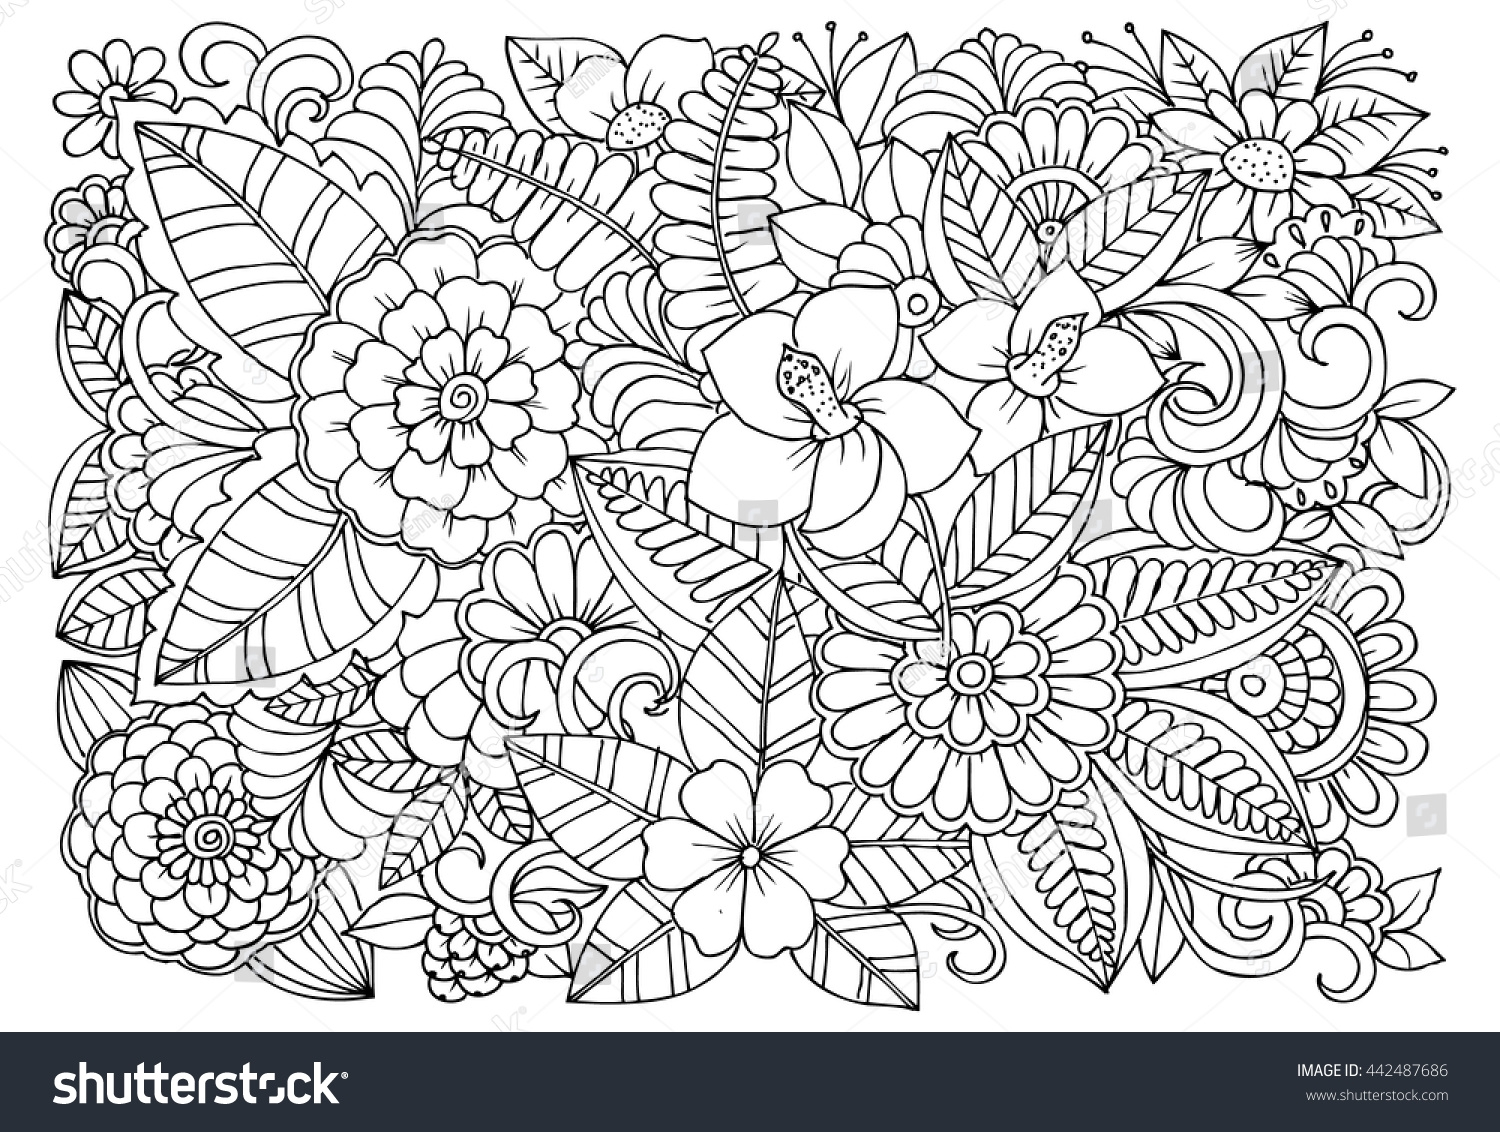 Flower Garden Coloring Pages - Black White Flower Pattern Coloring Doodle Stock Vector